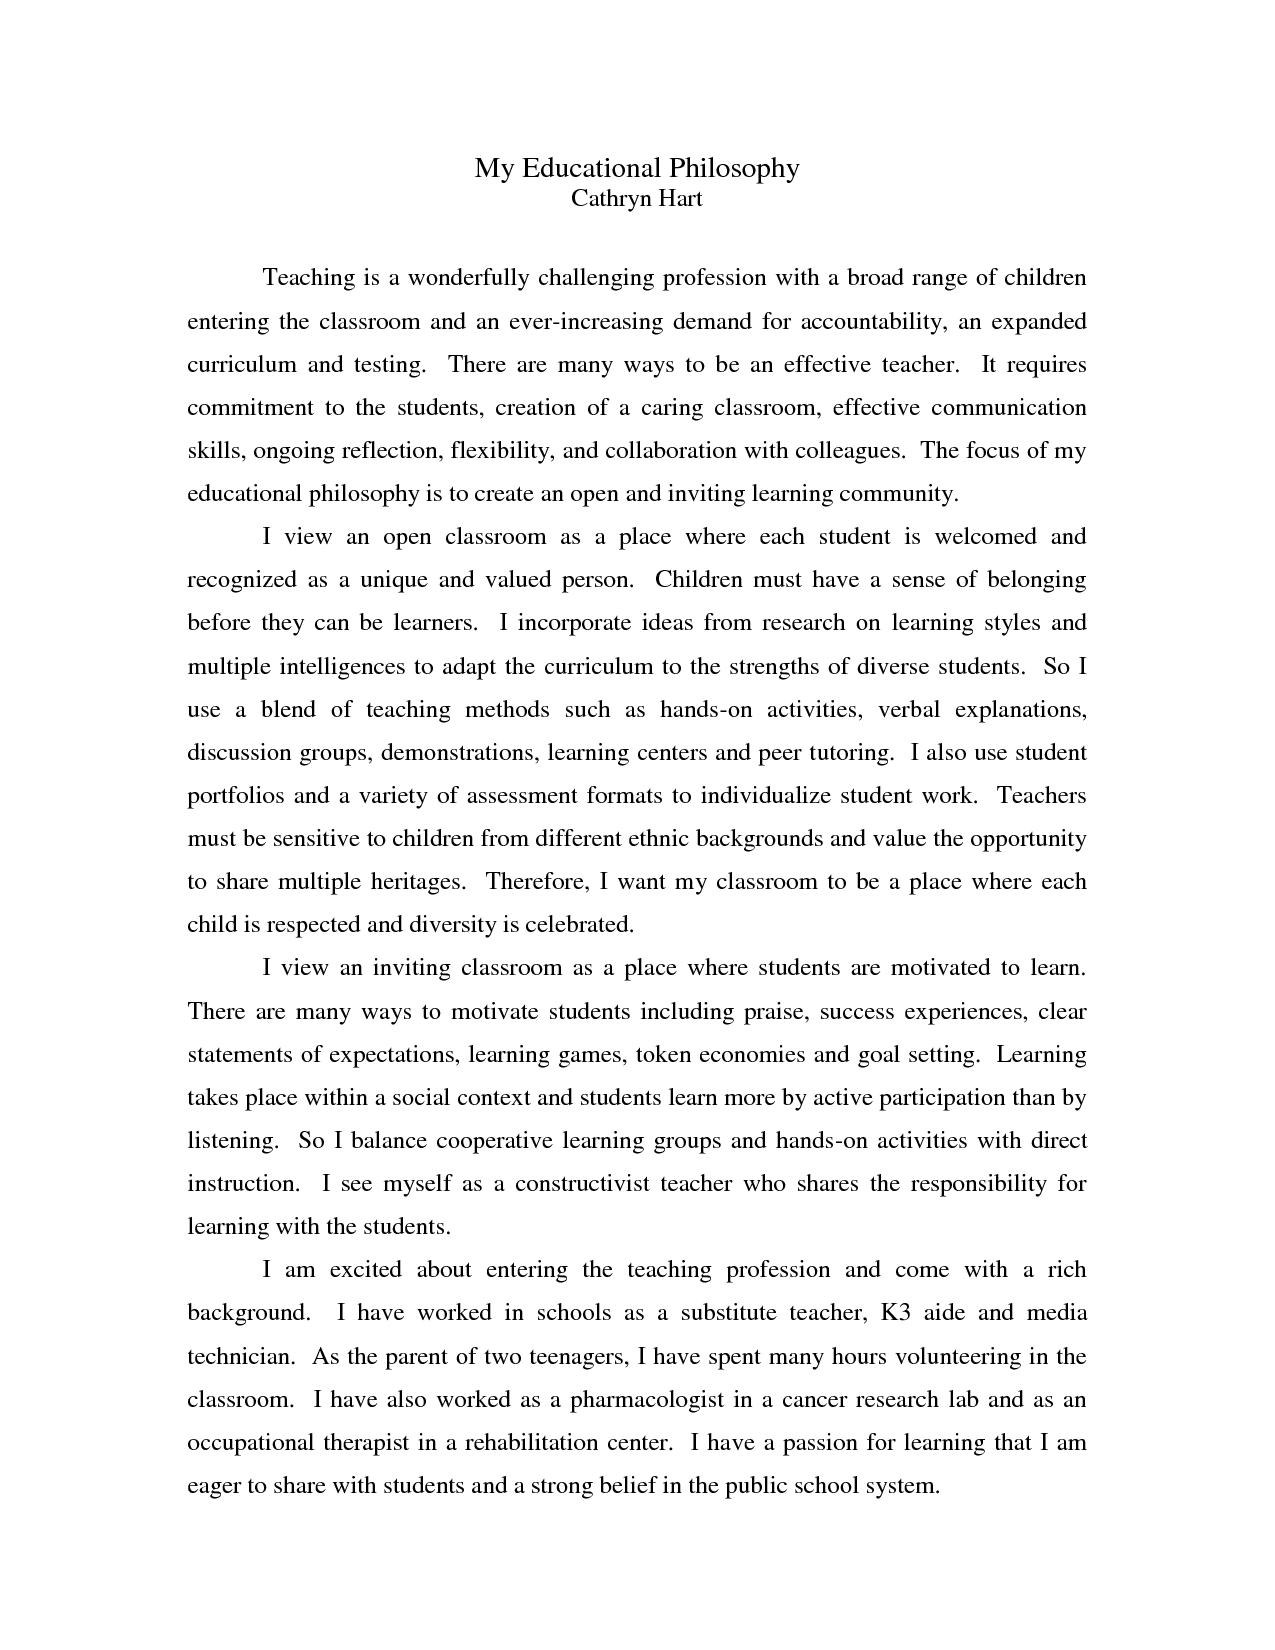 Writing a Philosophy of Teaching Statement